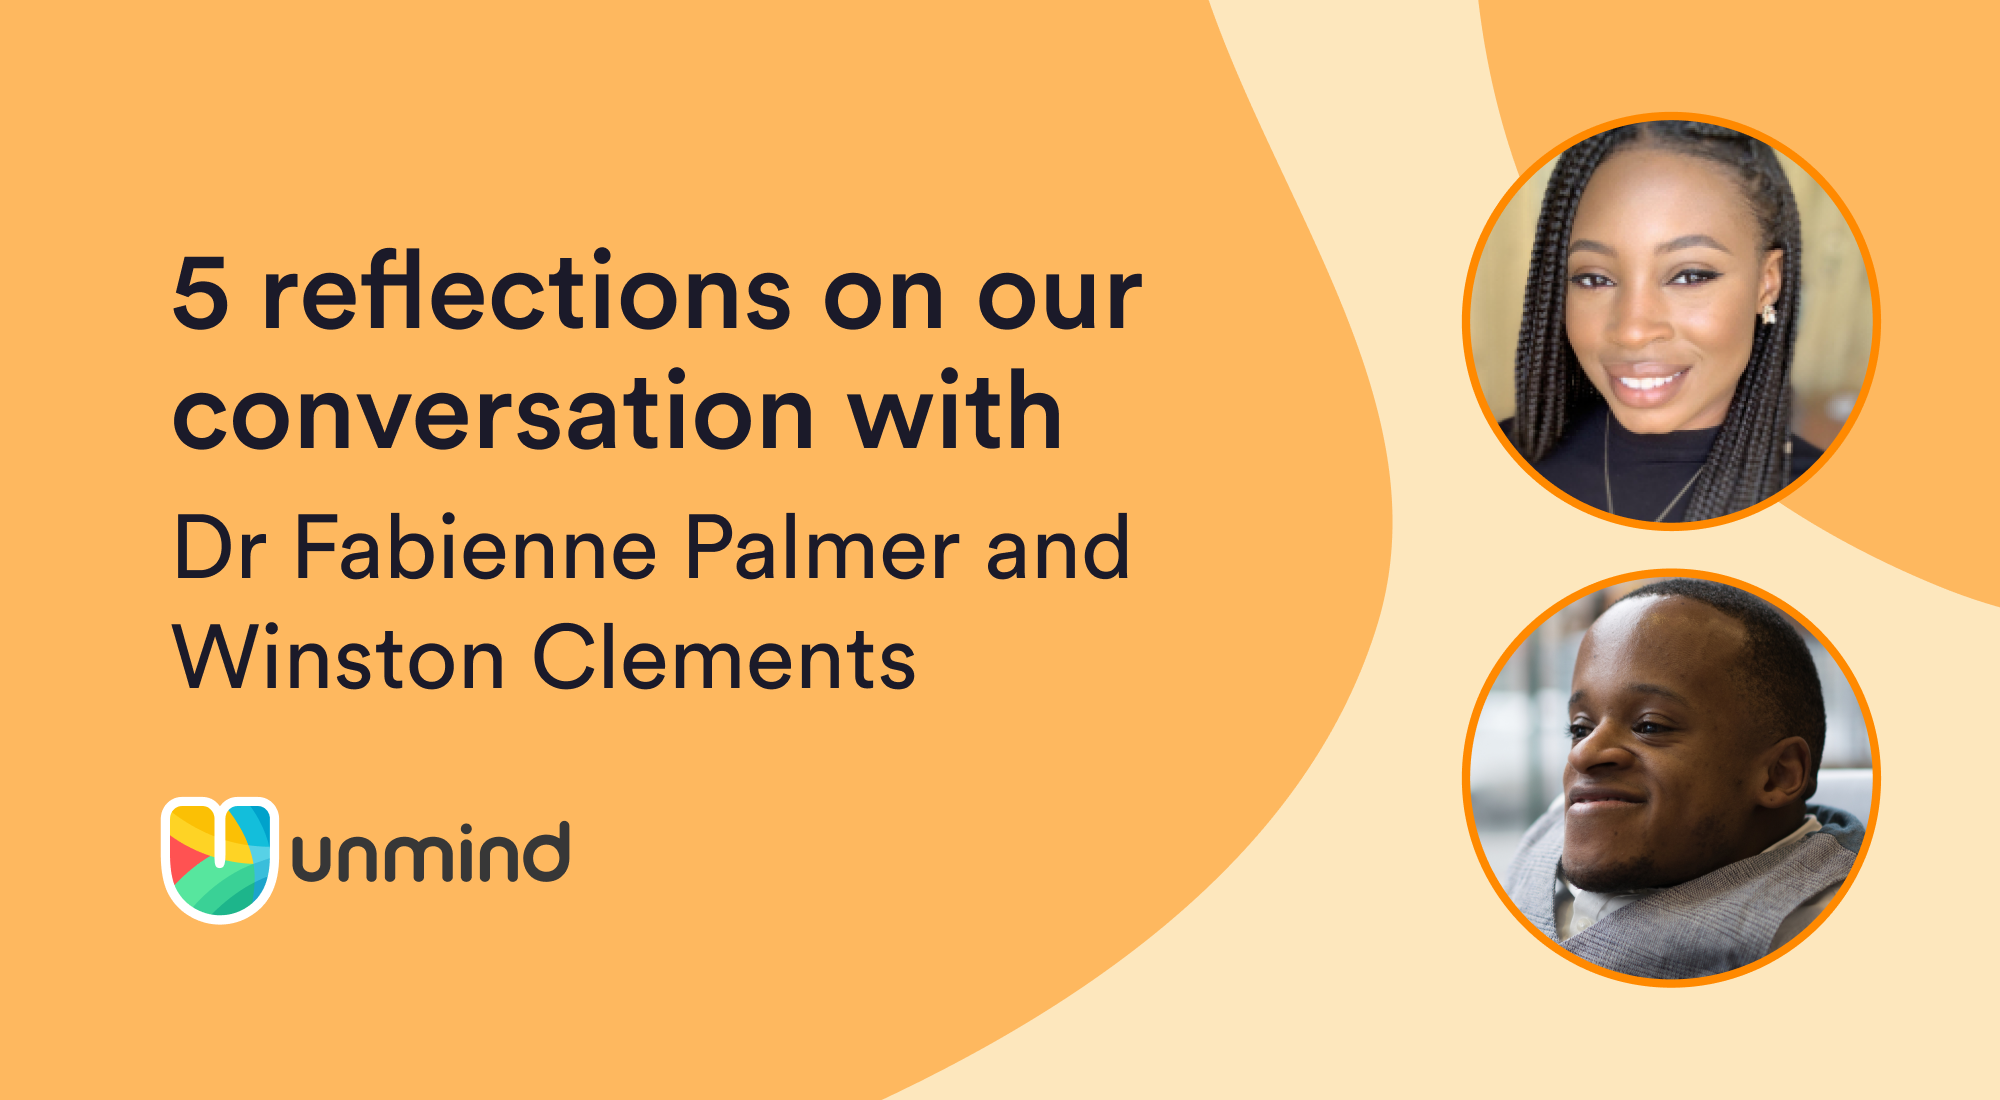 5 reflections on our conversation with Fabienne Palmer and Winston Clements